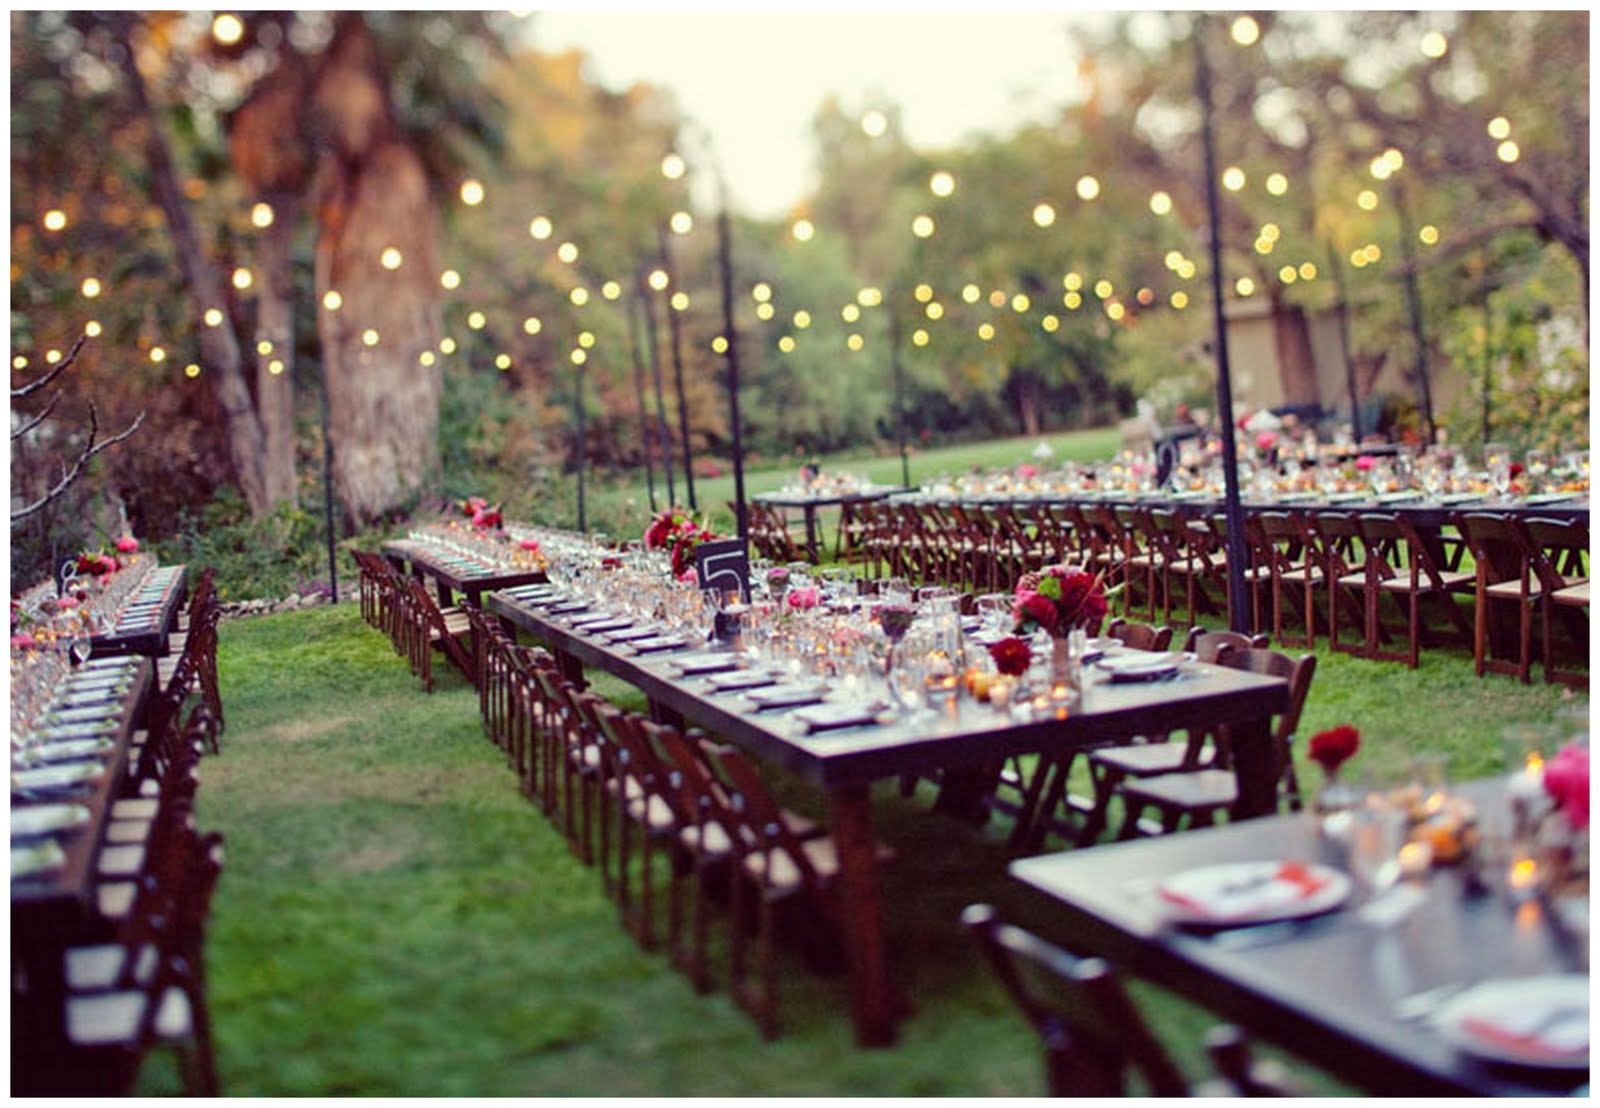 Real enchanted garden wedding kelly steve - Garden wedding decorations pictures ...